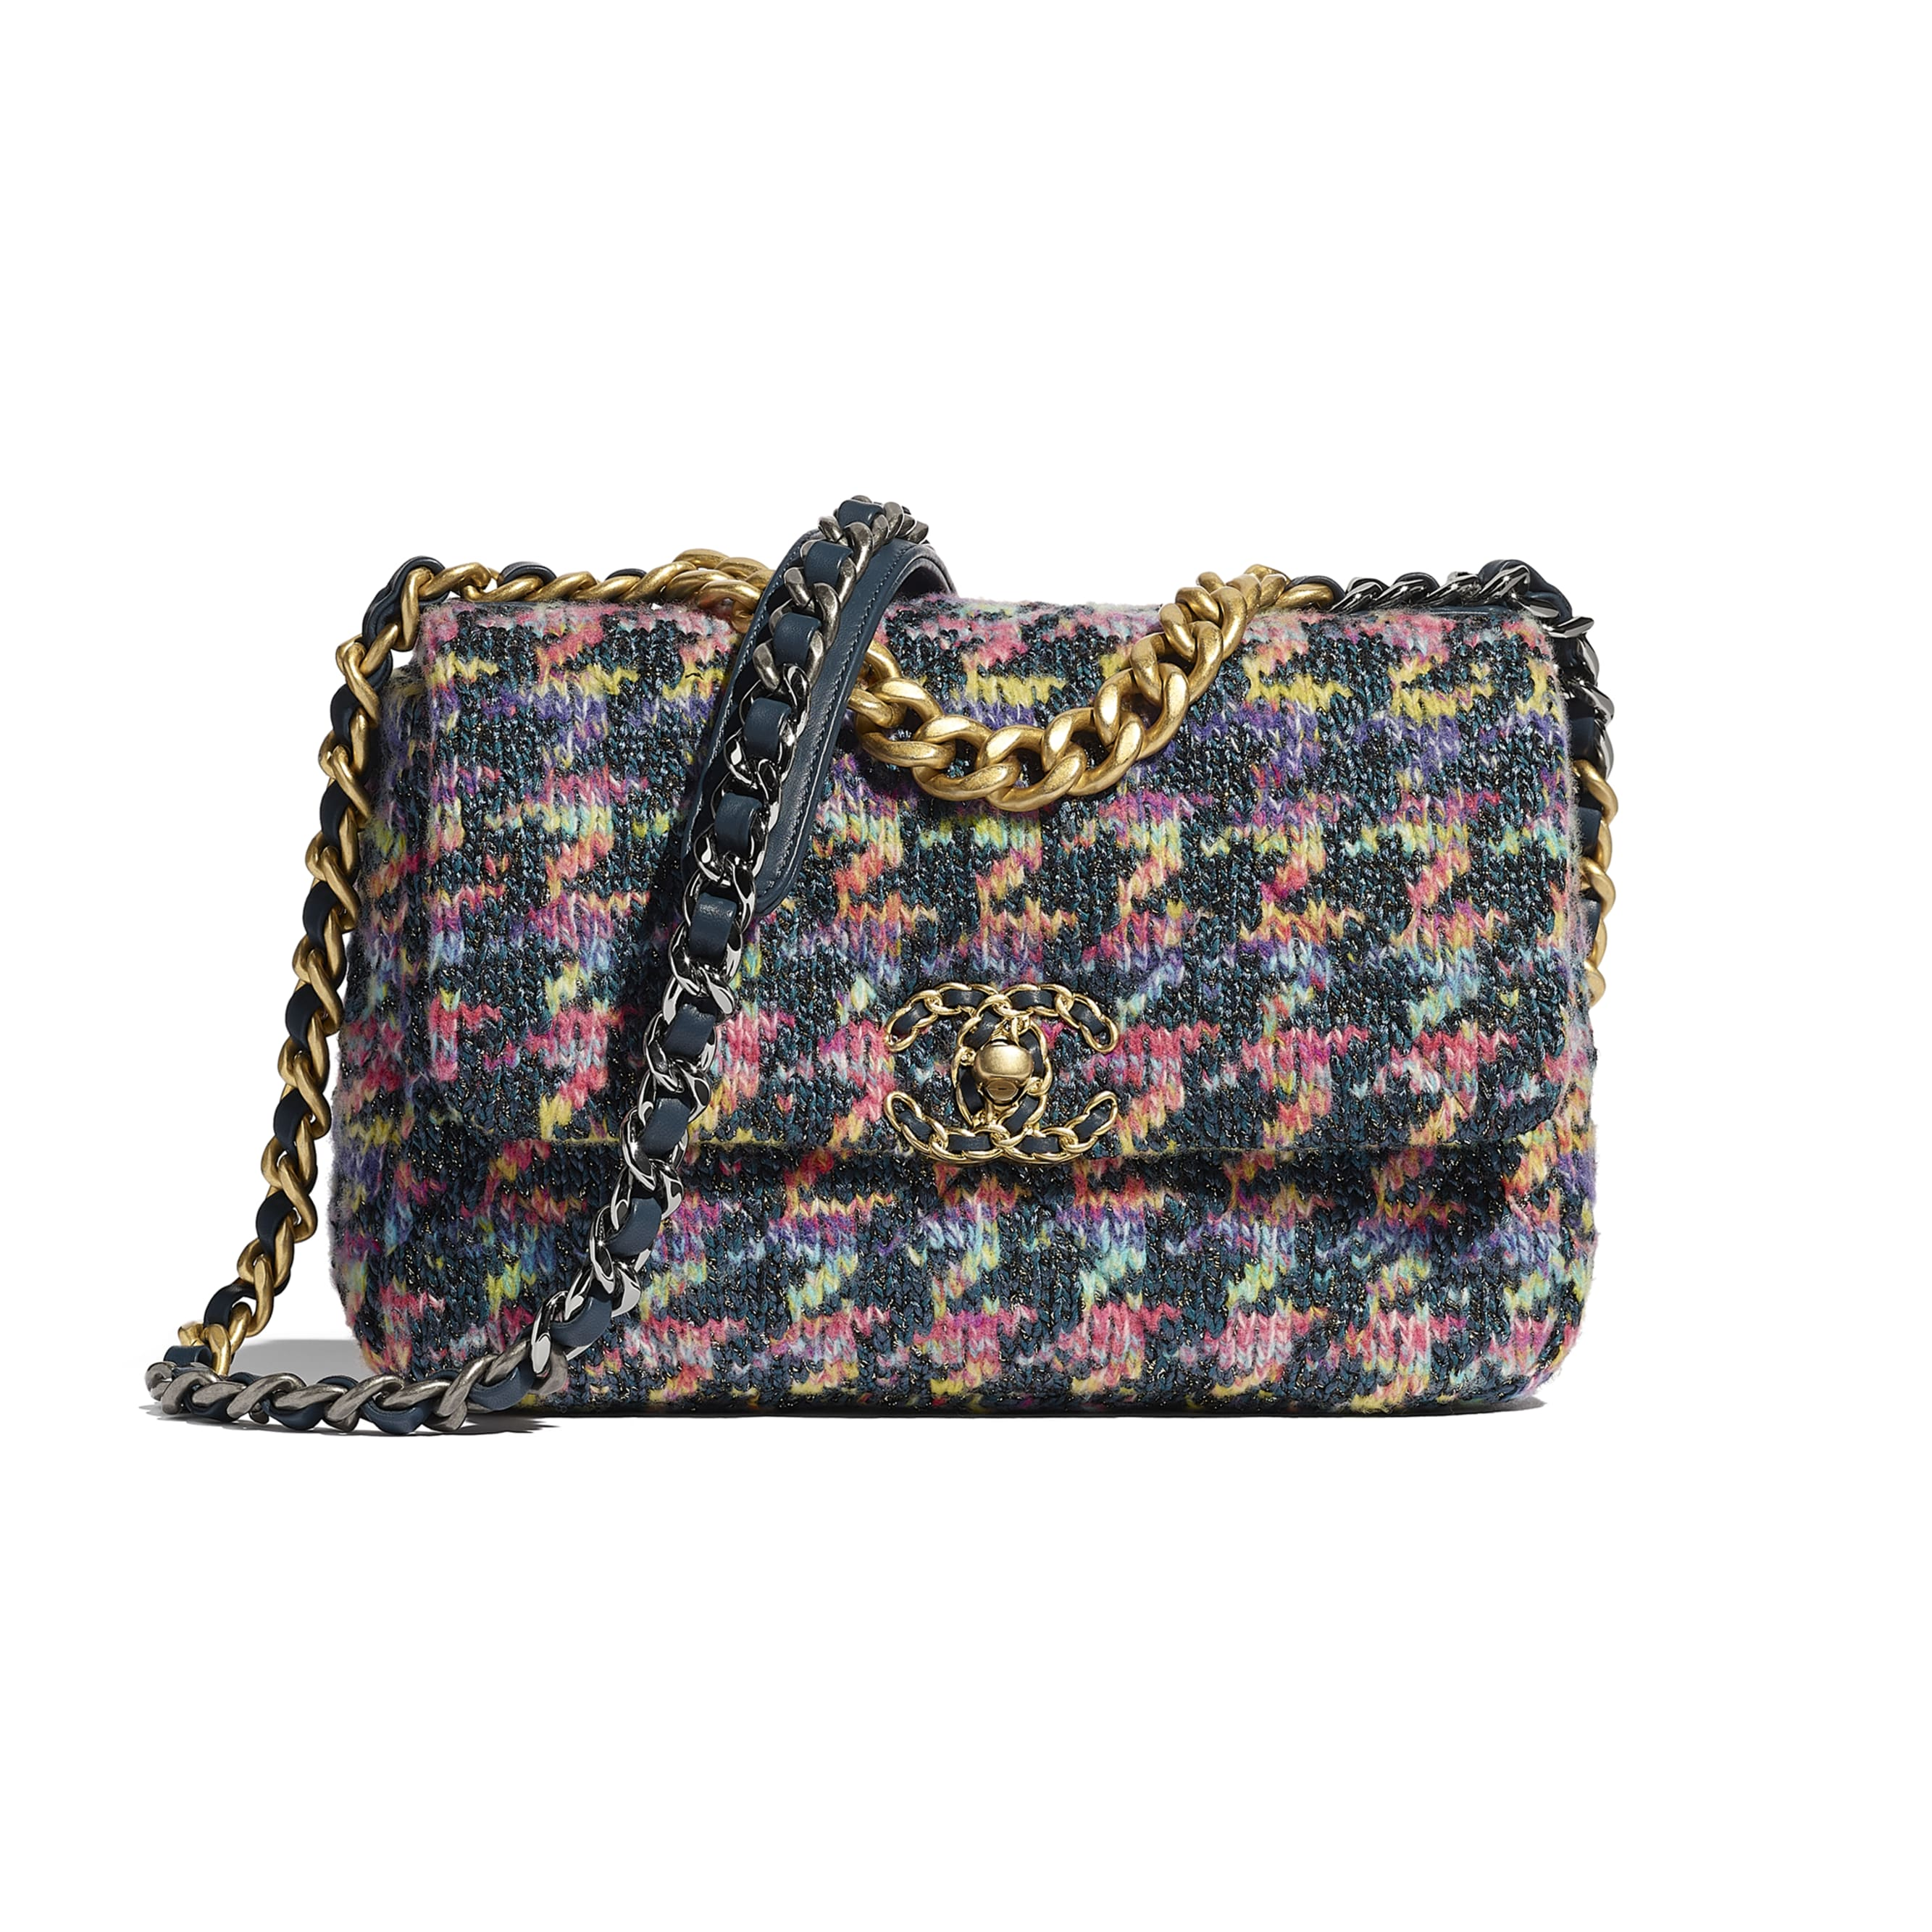 CHANEL 19 Flap Bag - Multicolour - Knit, Gold-Tone, Silver-Tone & Ruthenium-Finish Metal - CHANEL - Default view - see standard sized version